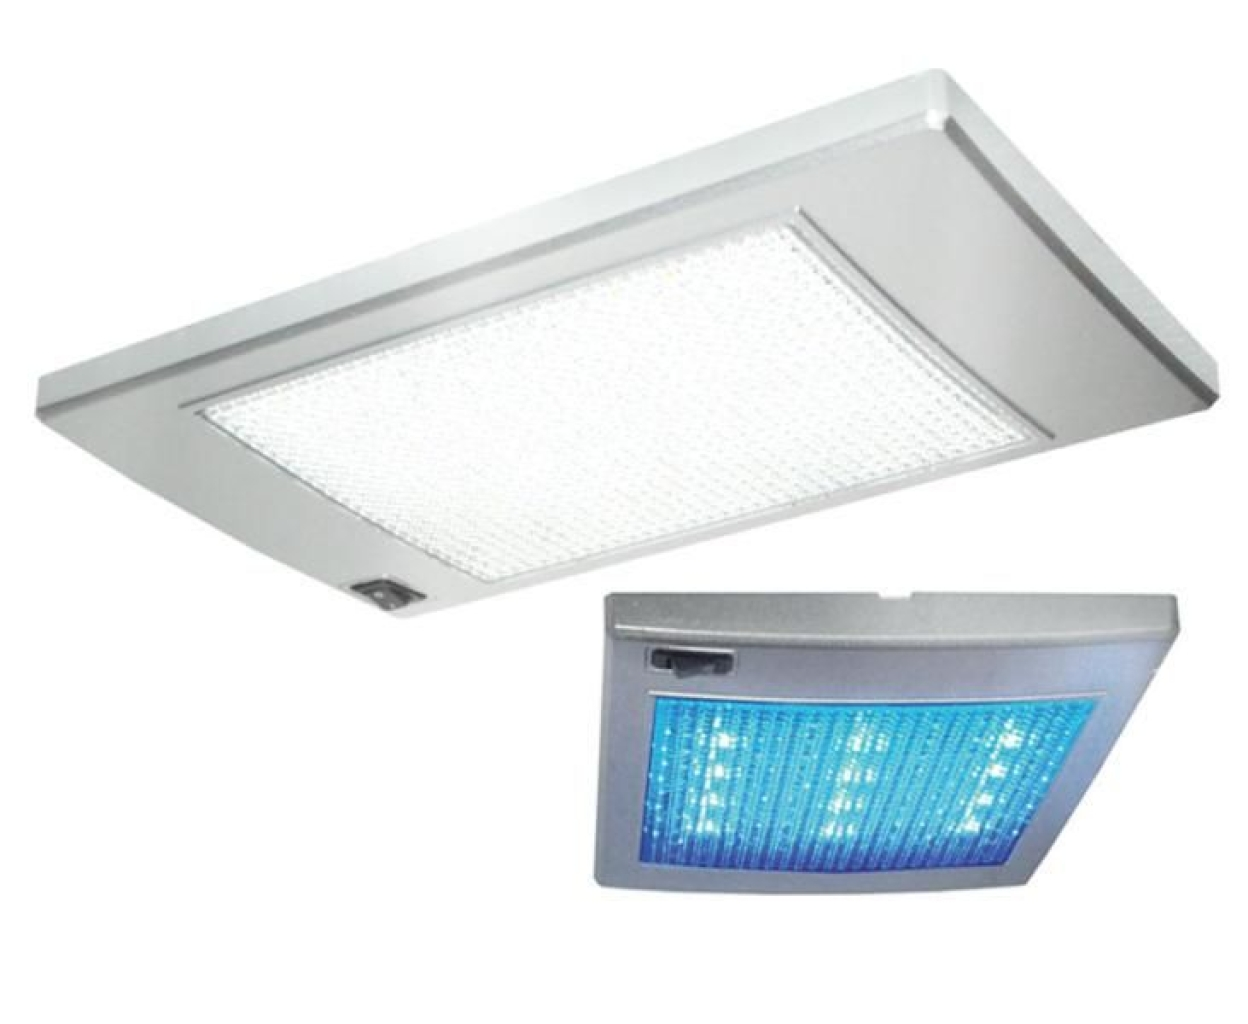 Plafon rectangular luz 36 led ref 835492 para for Plafon led cocina rectangular